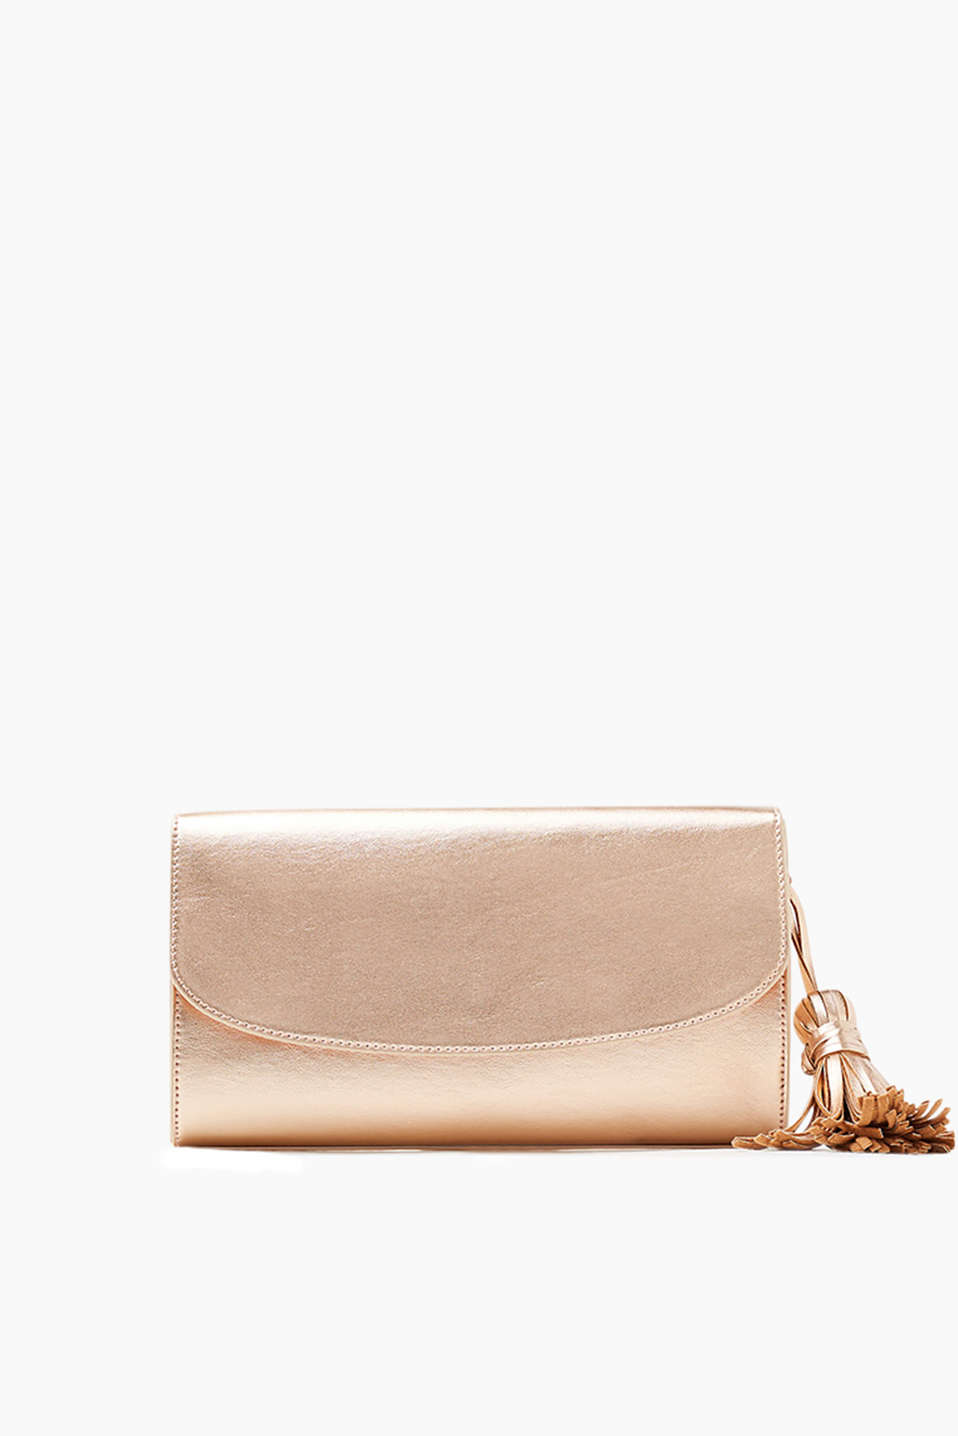 Con vistosa nappa decorativa: clutch in similpelle liscia e lucida